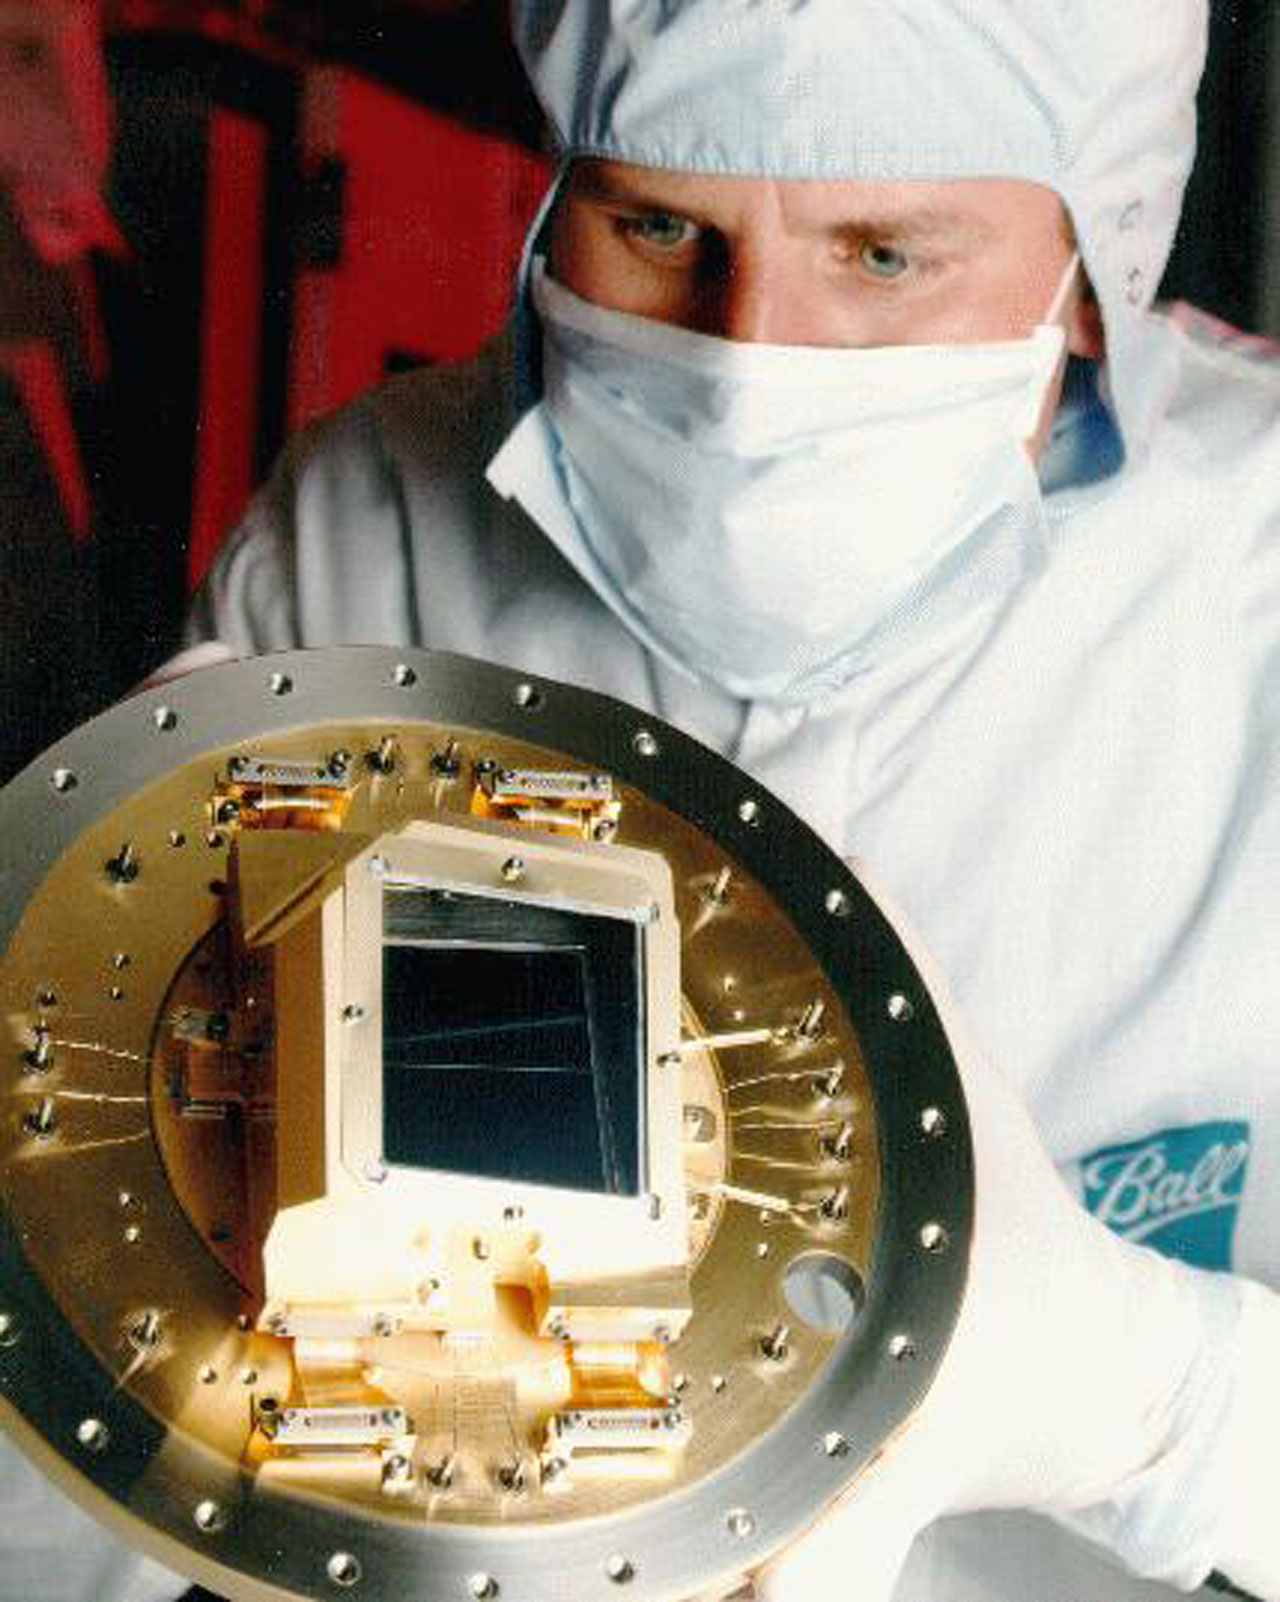 A look into one of ACS's most delicate and crucial parts - the CCD camera.